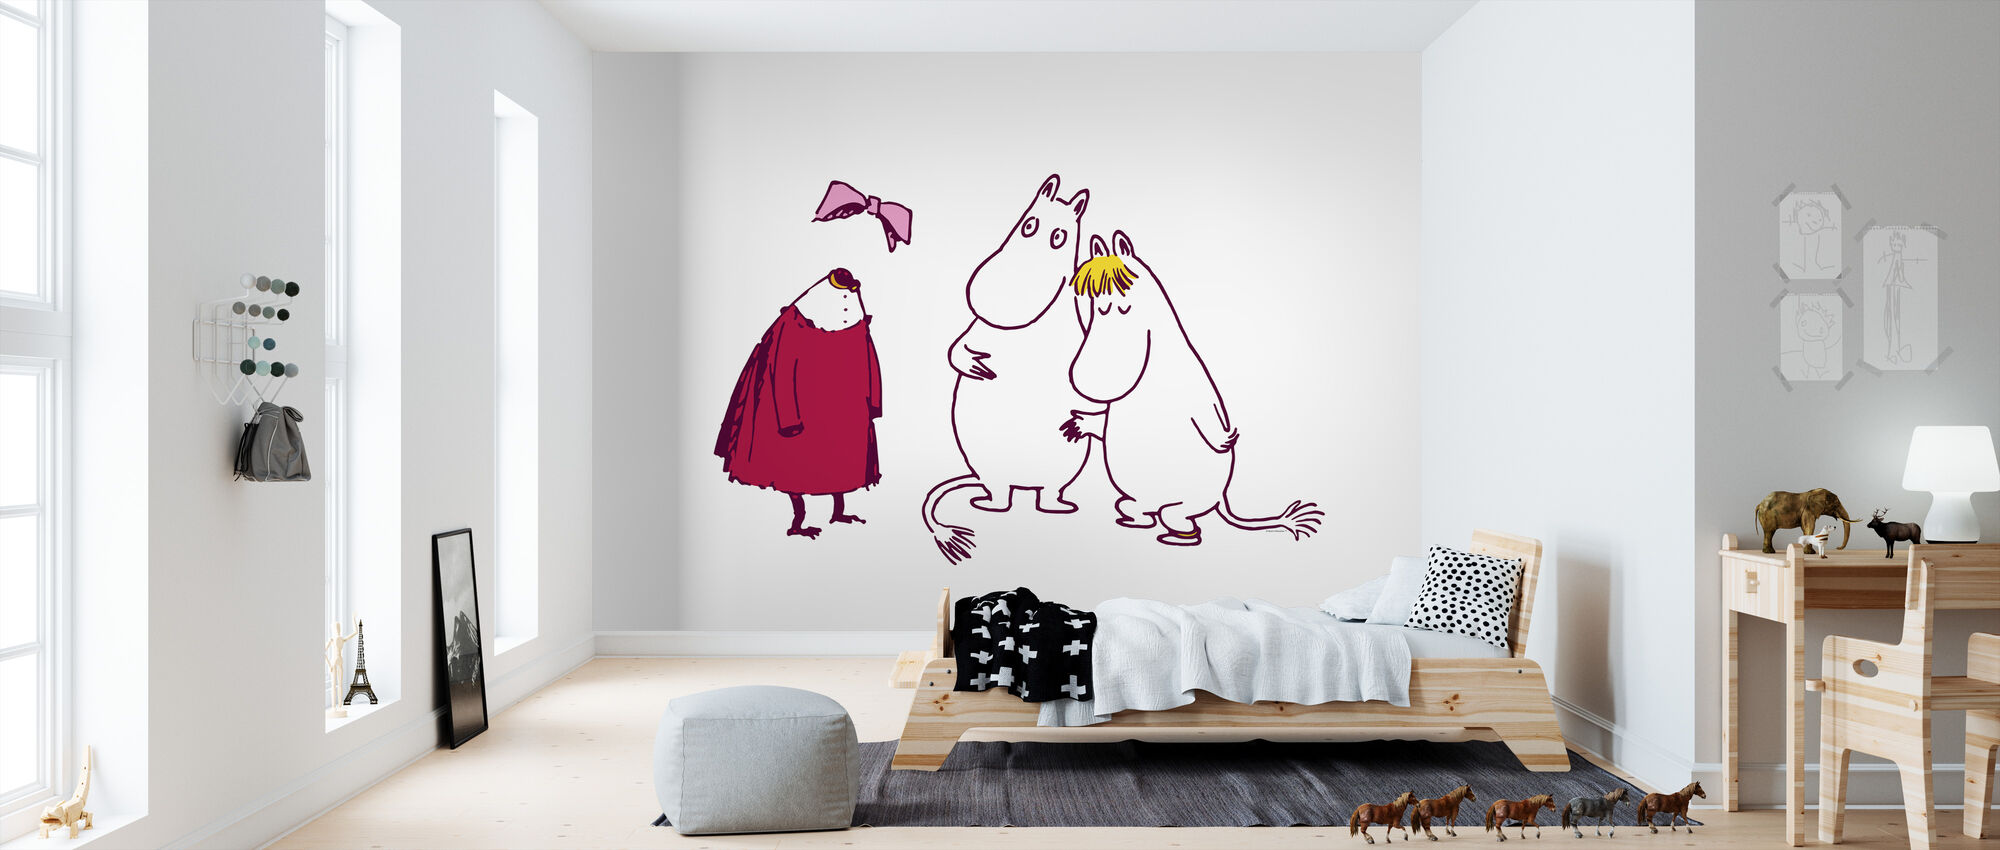 Moomin - The Invisible Child - Ninny, Moomin and Snorkmaiden - Wallpaper - Kids Room